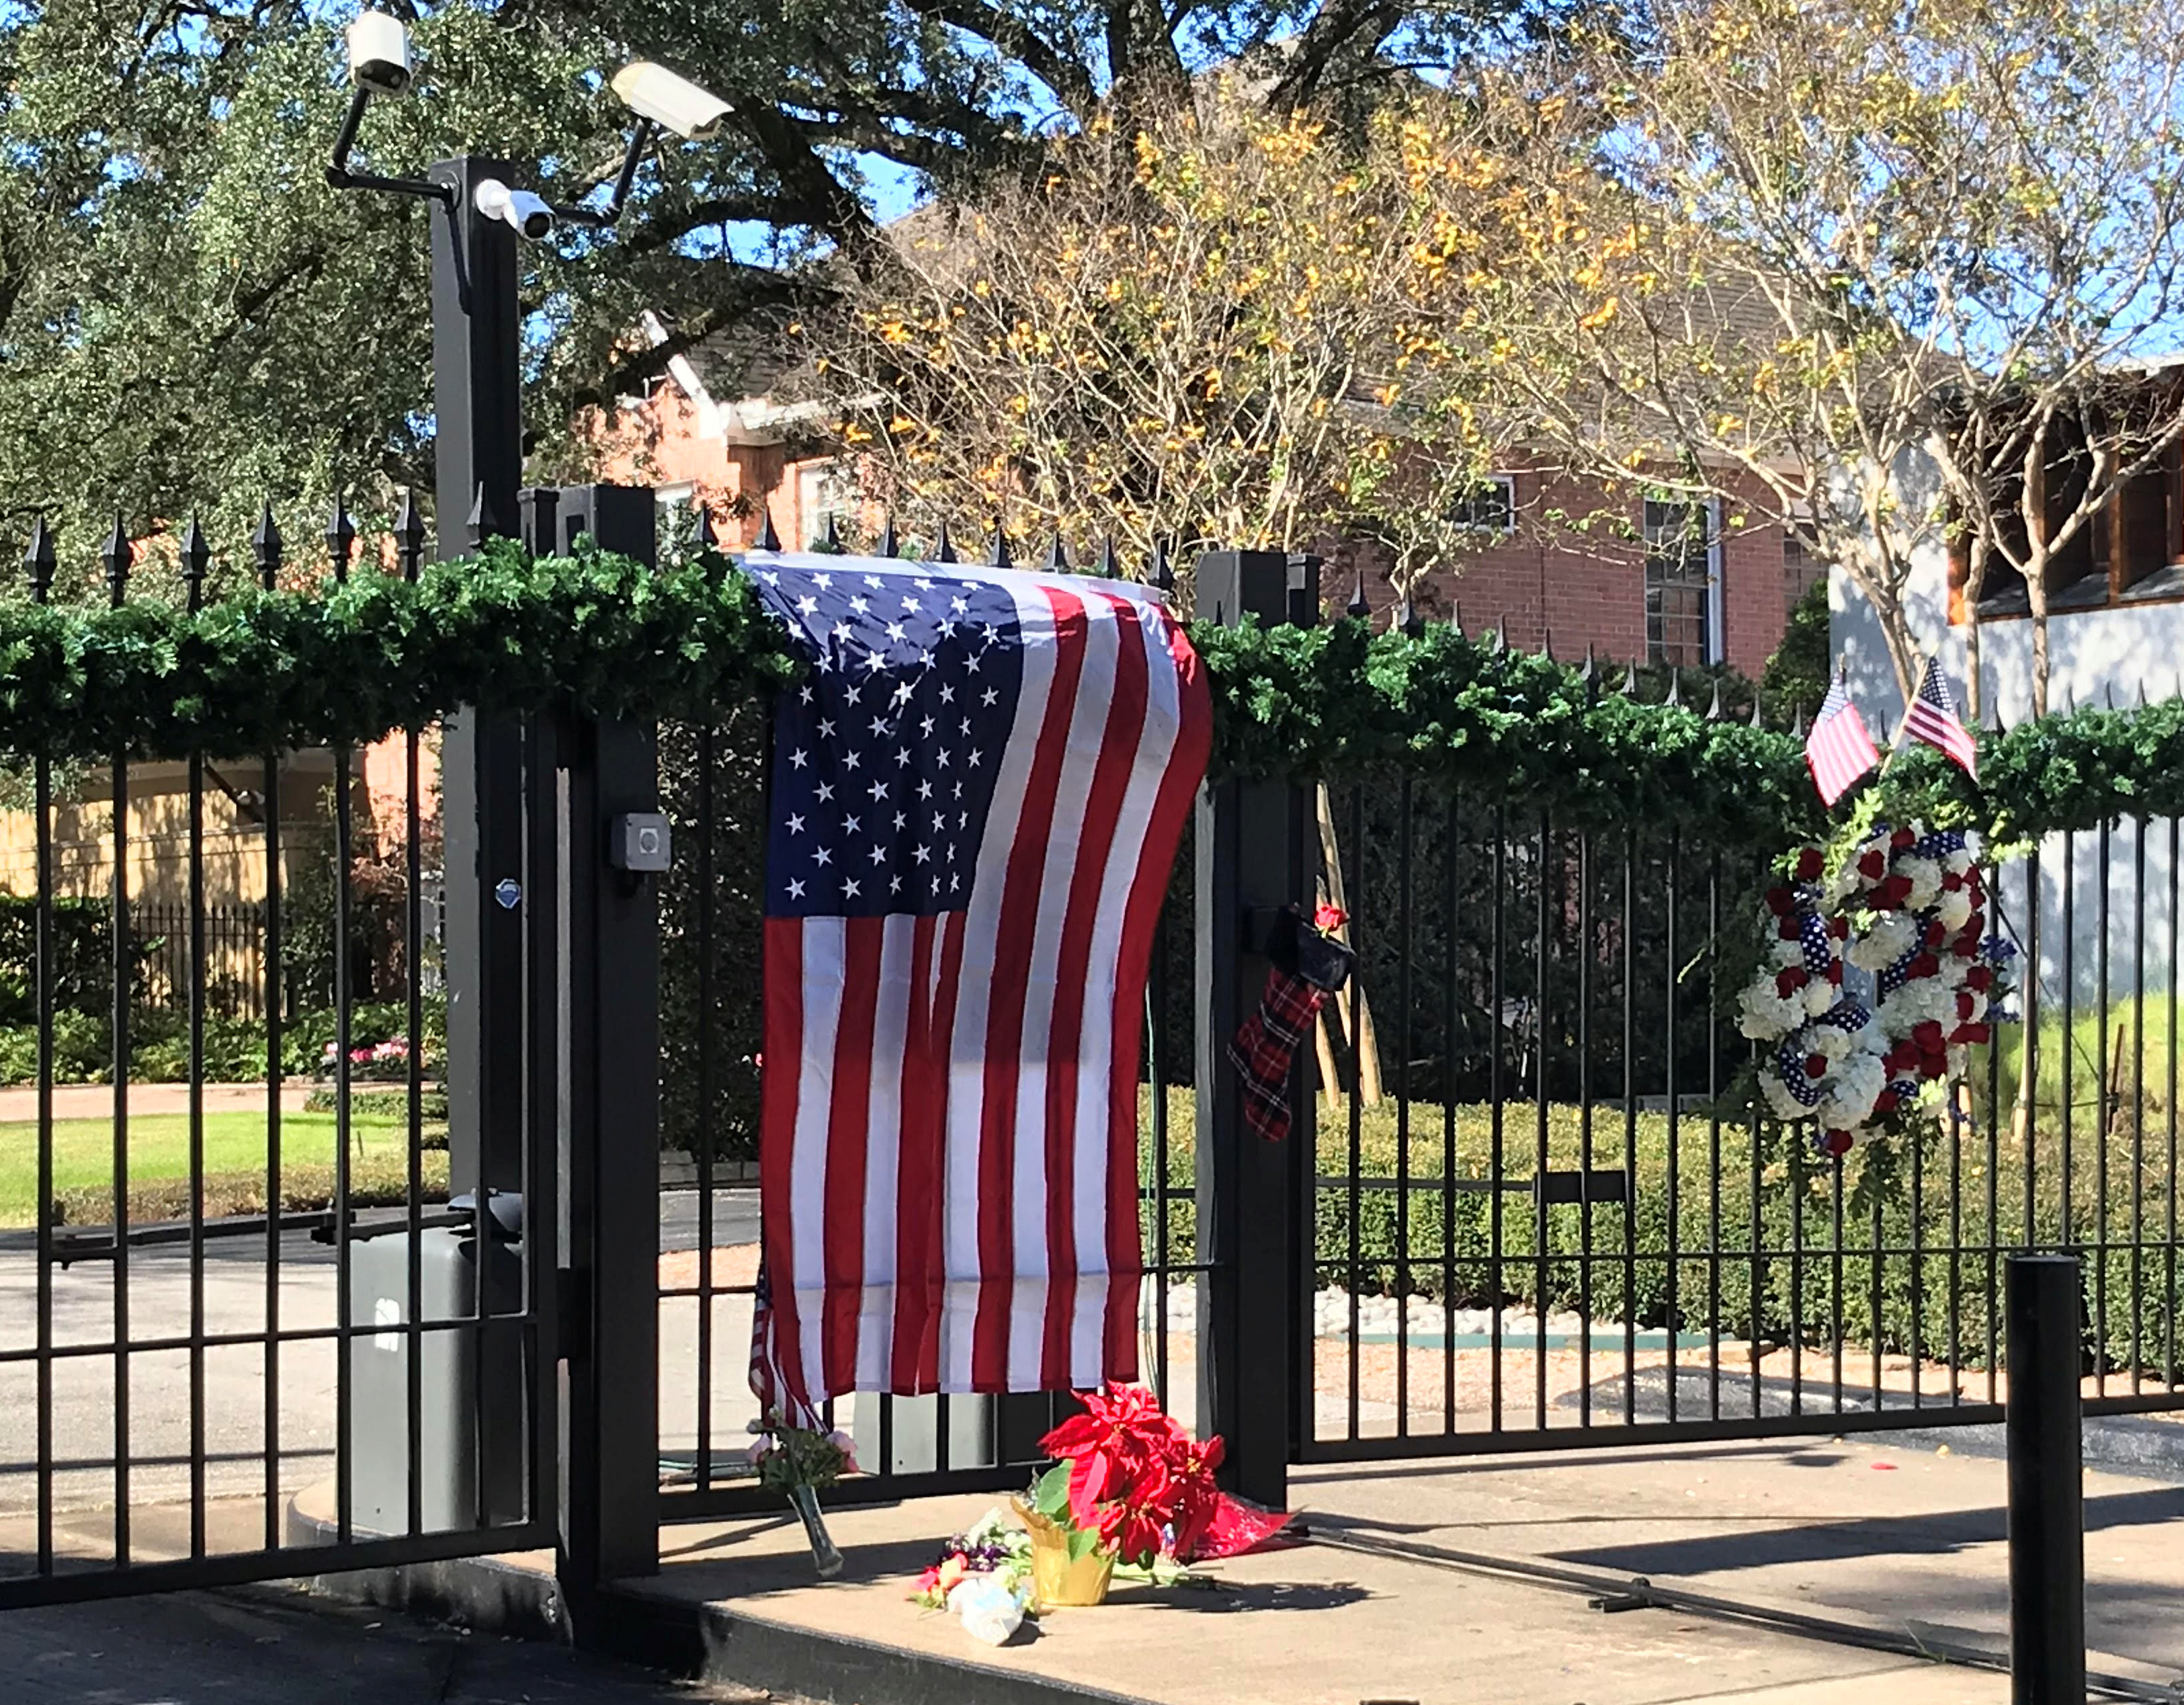 A flag is draped over the gate to the neighborhood of the home of former President George H.W. Bush, a day after he passed away in Houston, Texas, U.S. December 1, 2018. REUTERS/Gary McWilliams